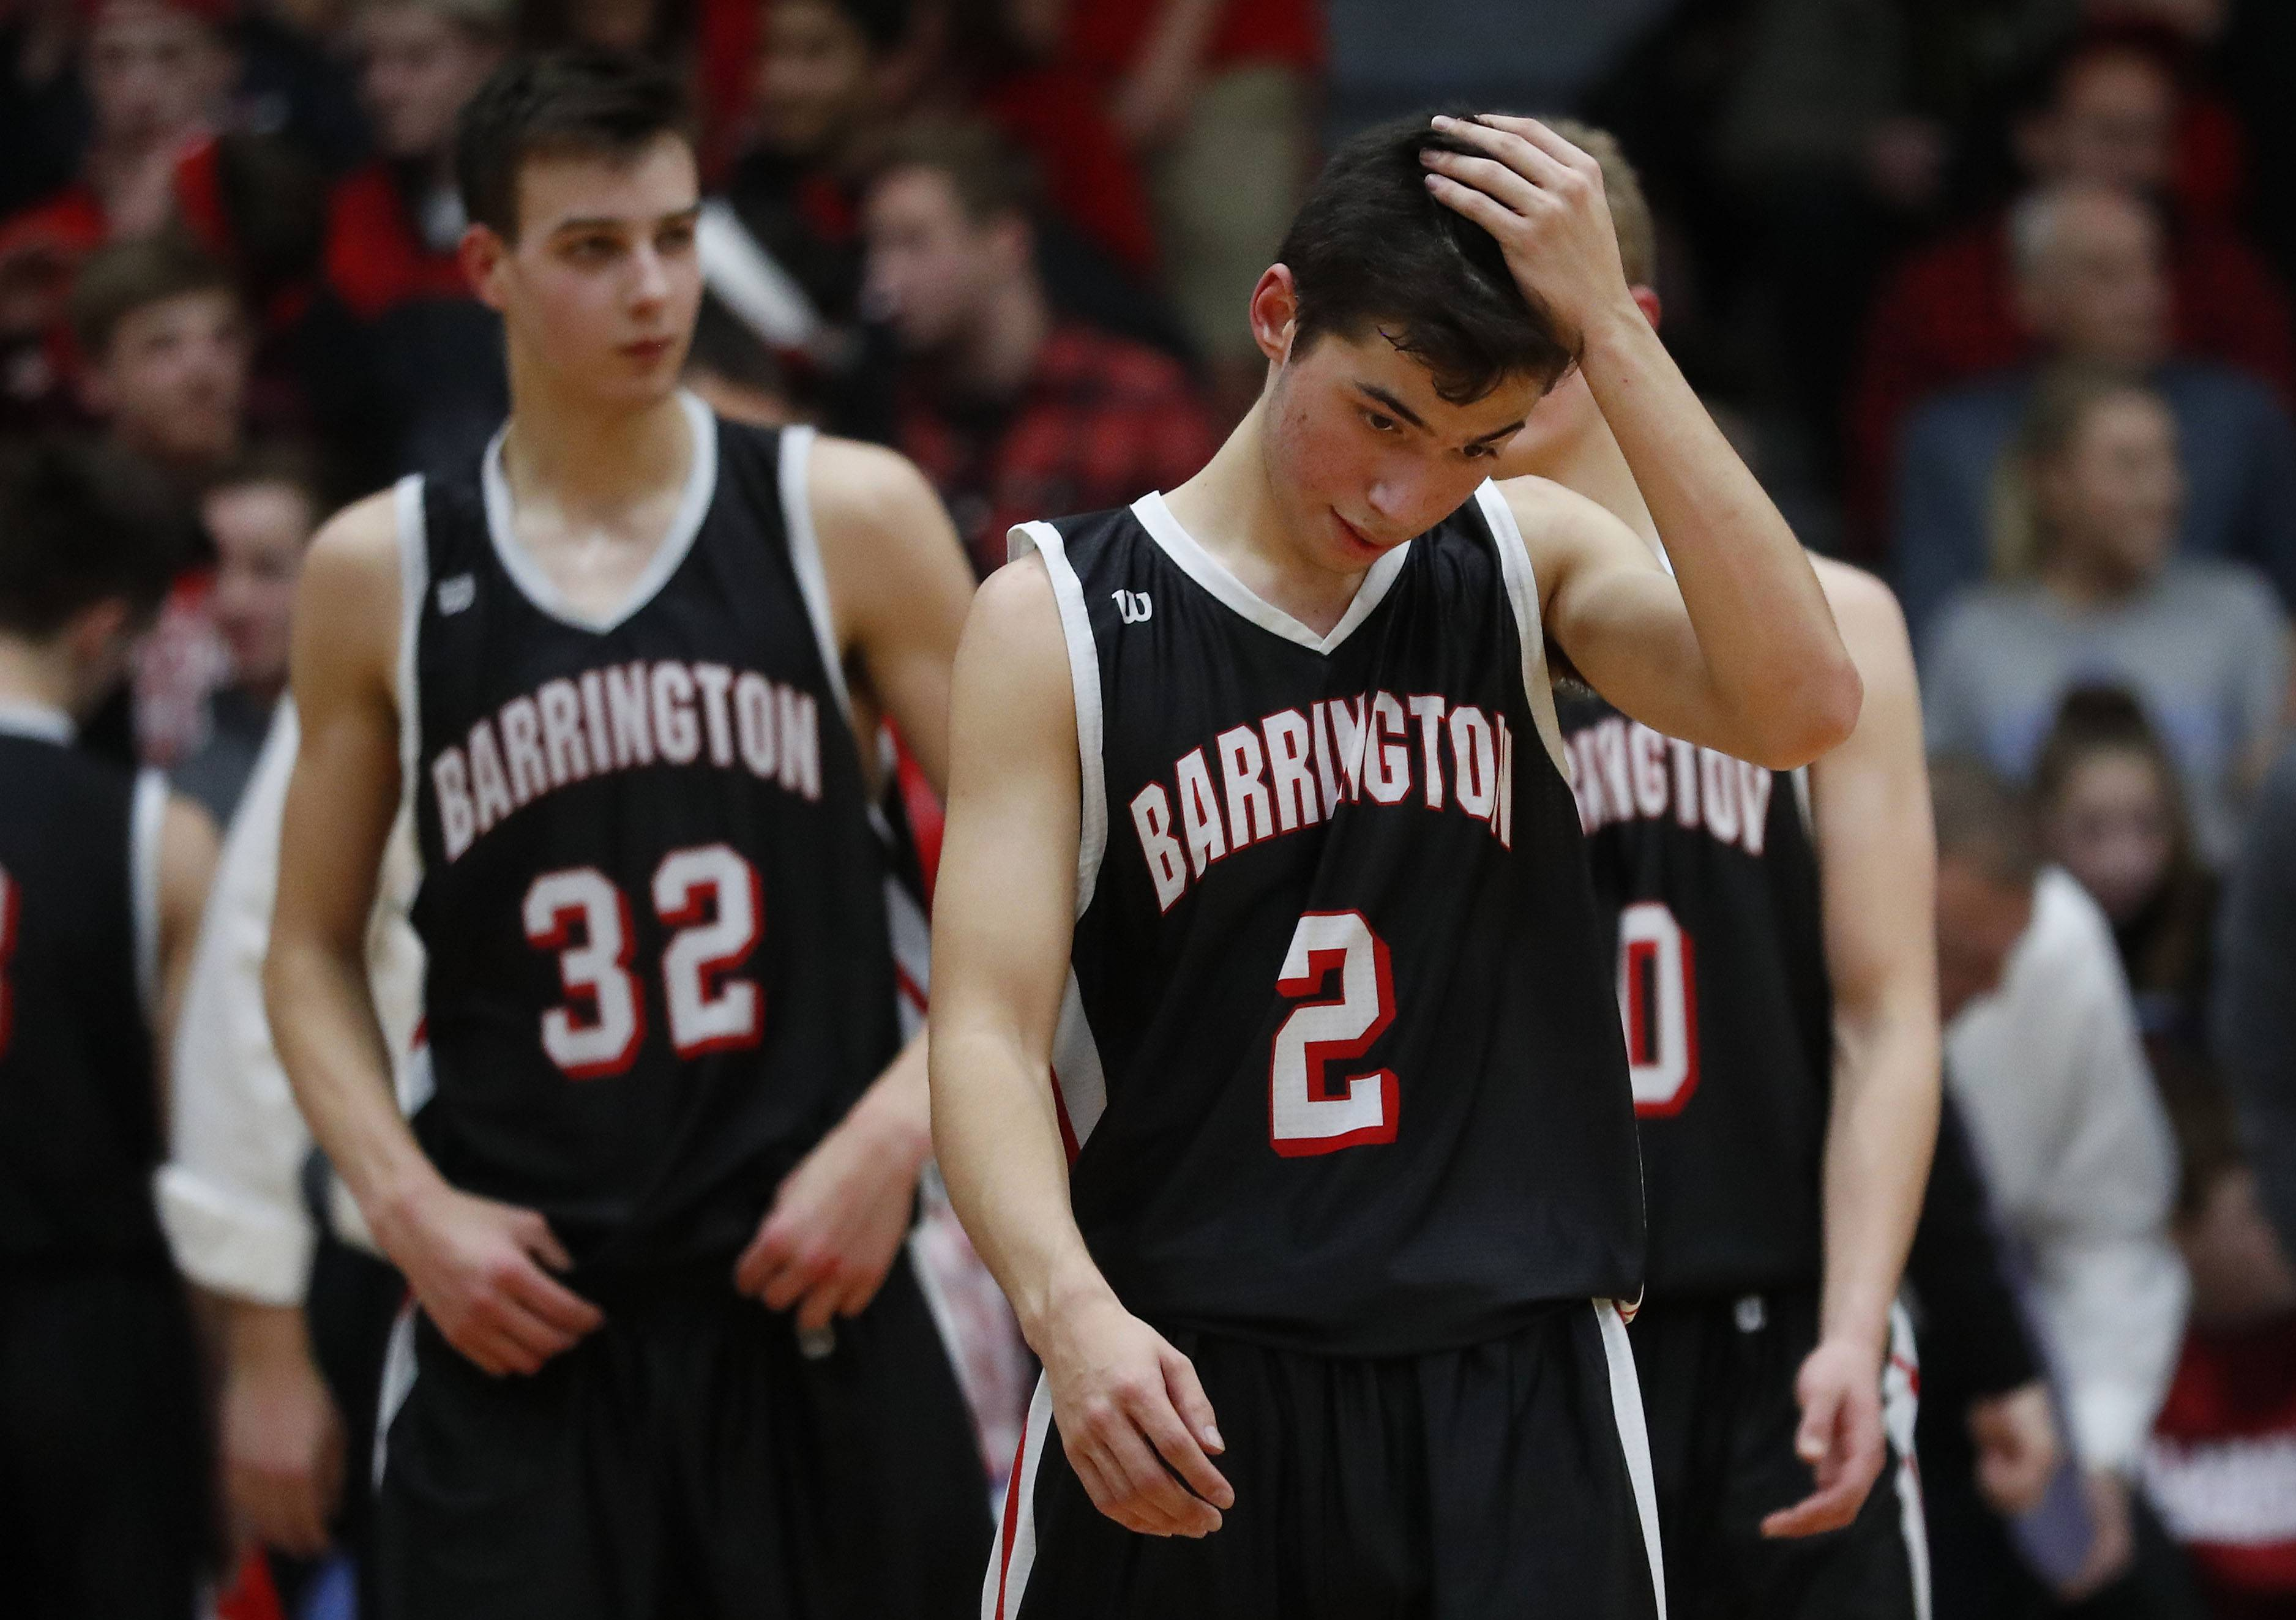 Barrington's Jason Boock reacts during the Broncos' 69-60 loss in the Class 4A sectional final at Lake Zurich on Friday.